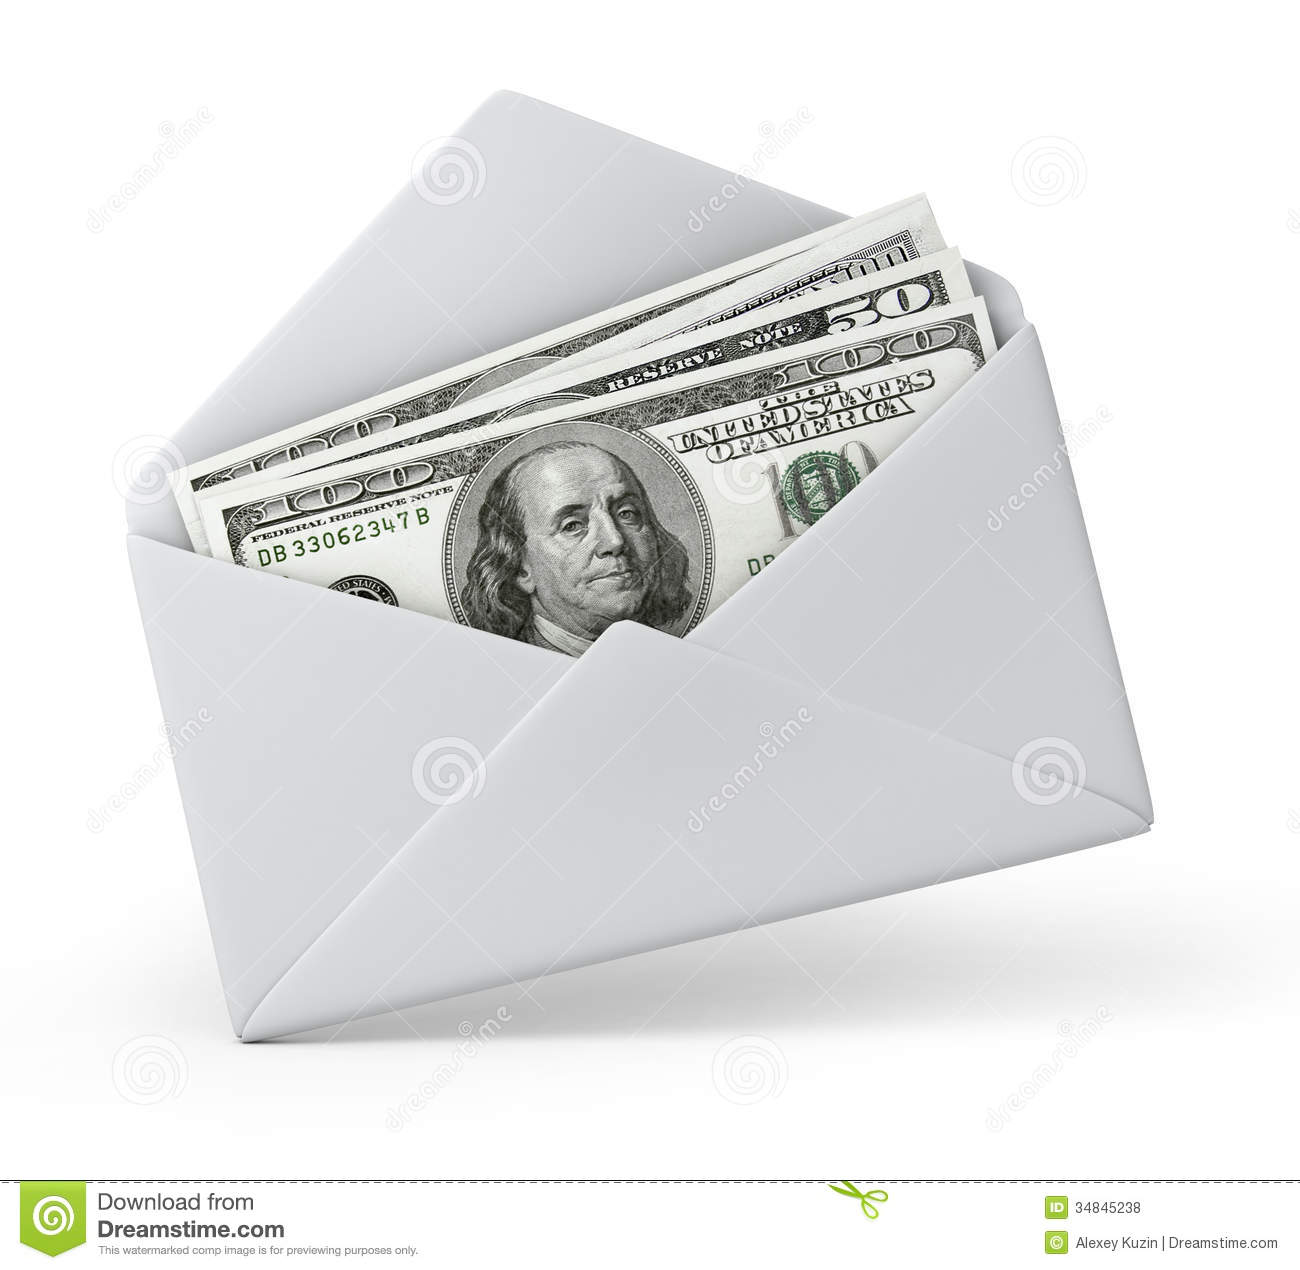 Put Money In The Envelope Stock Image - Image: 1732201